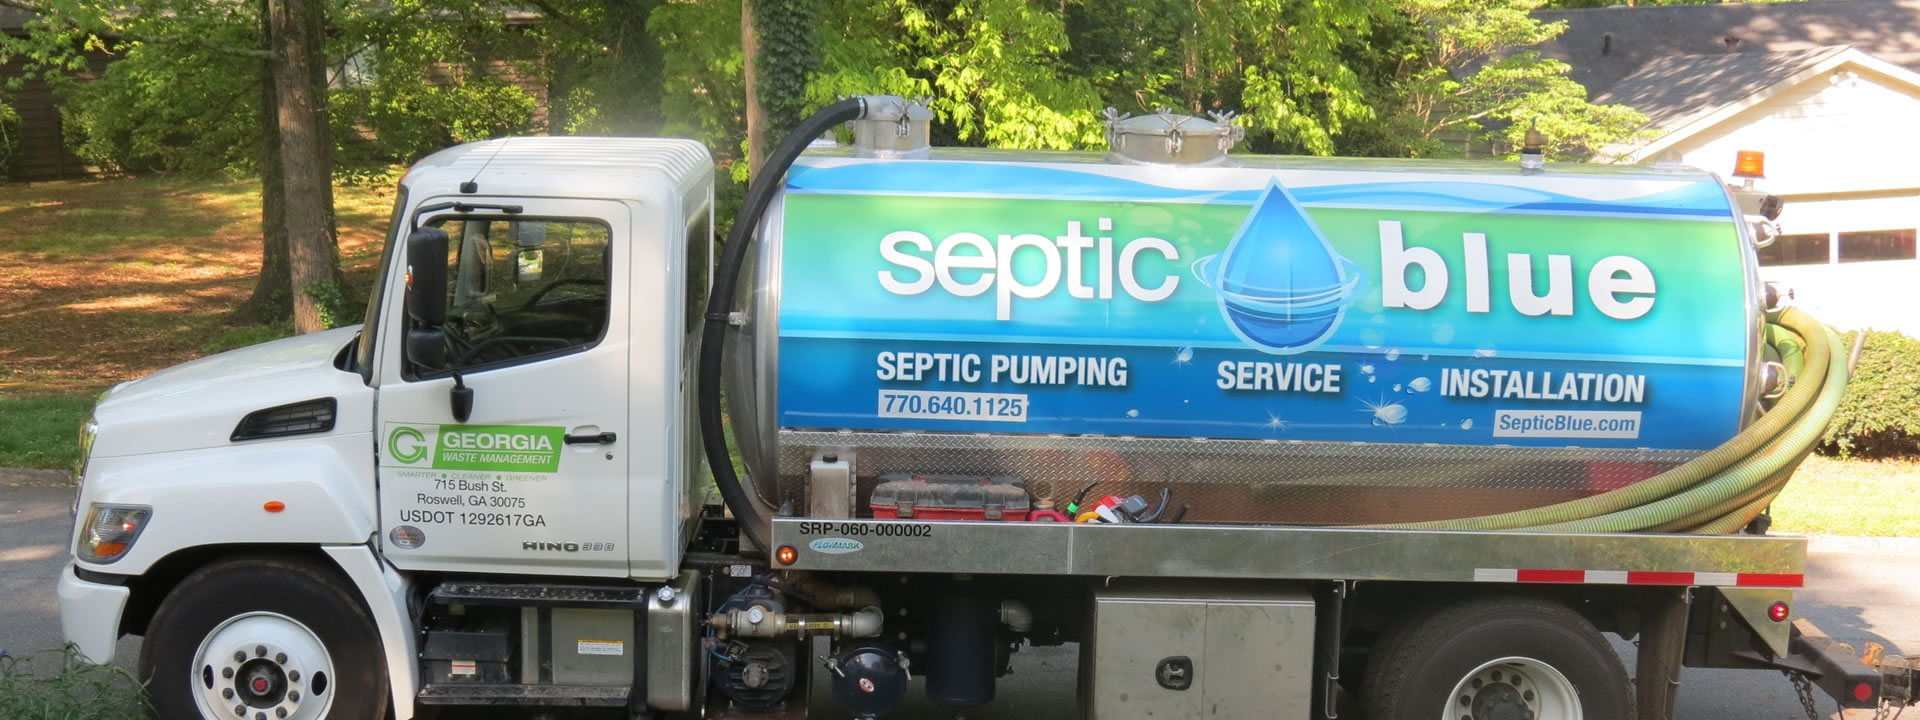 Septic Inspection Raleigh | Septic Tank Inspection Durham